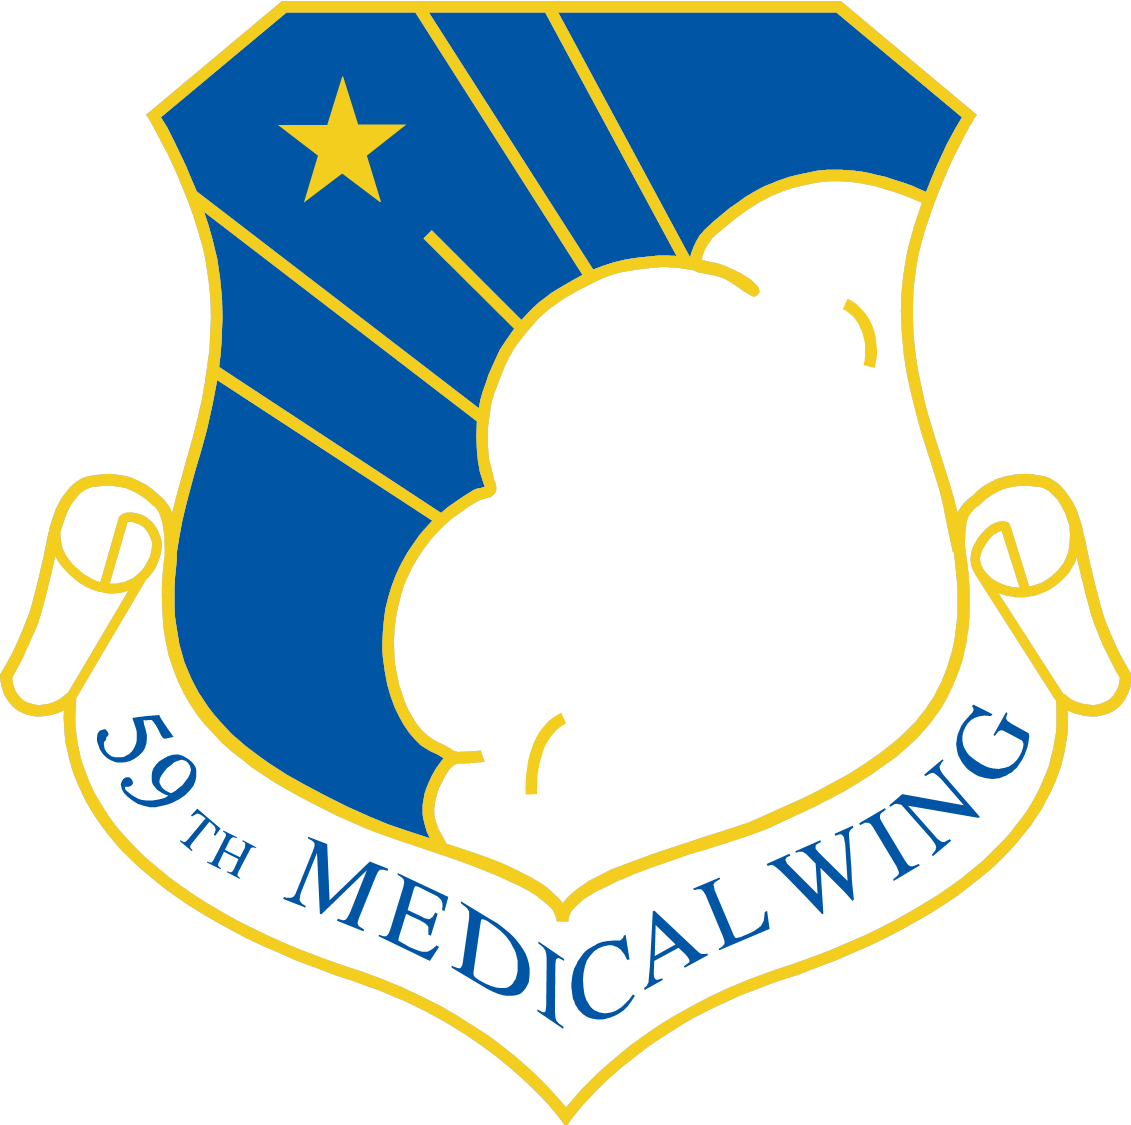 59th Medical Wing Shield